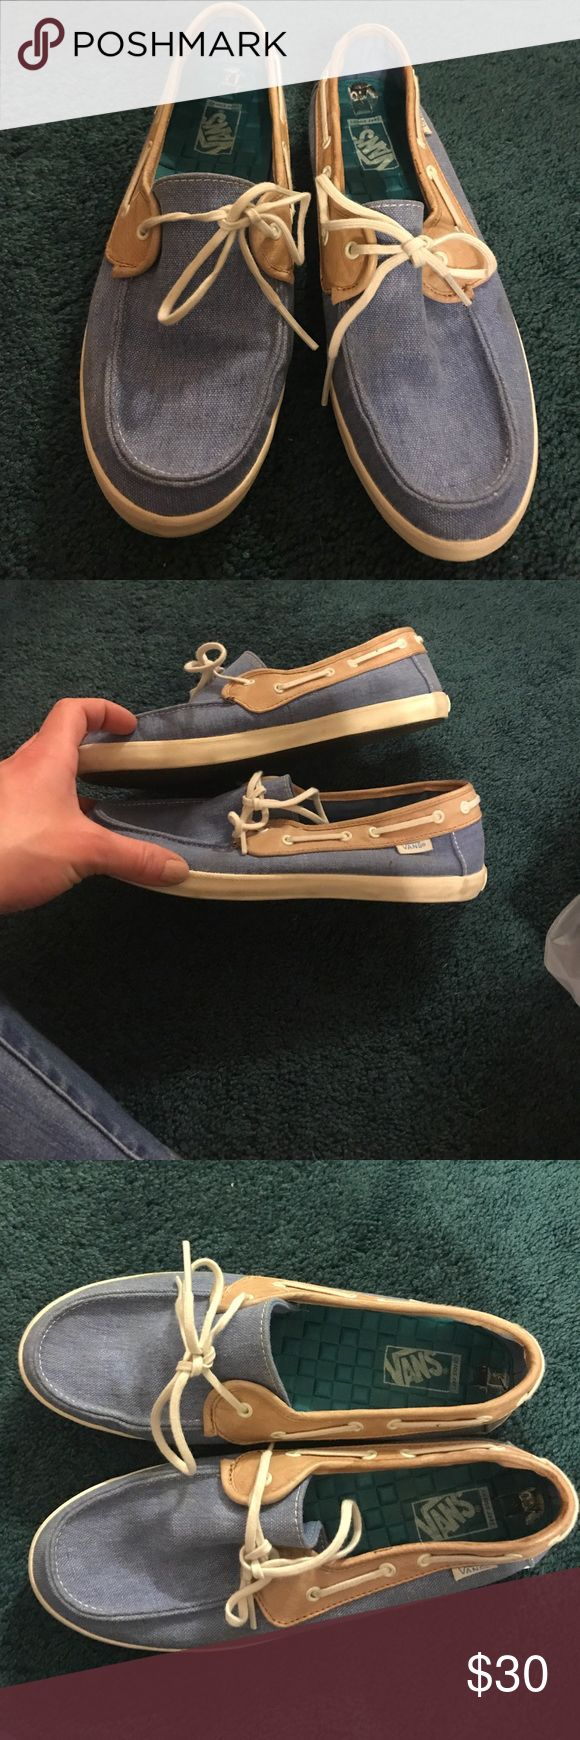 Vans boat shoes Worn once great condition no box light blue and tan Vans Shoes Flats & Loafers